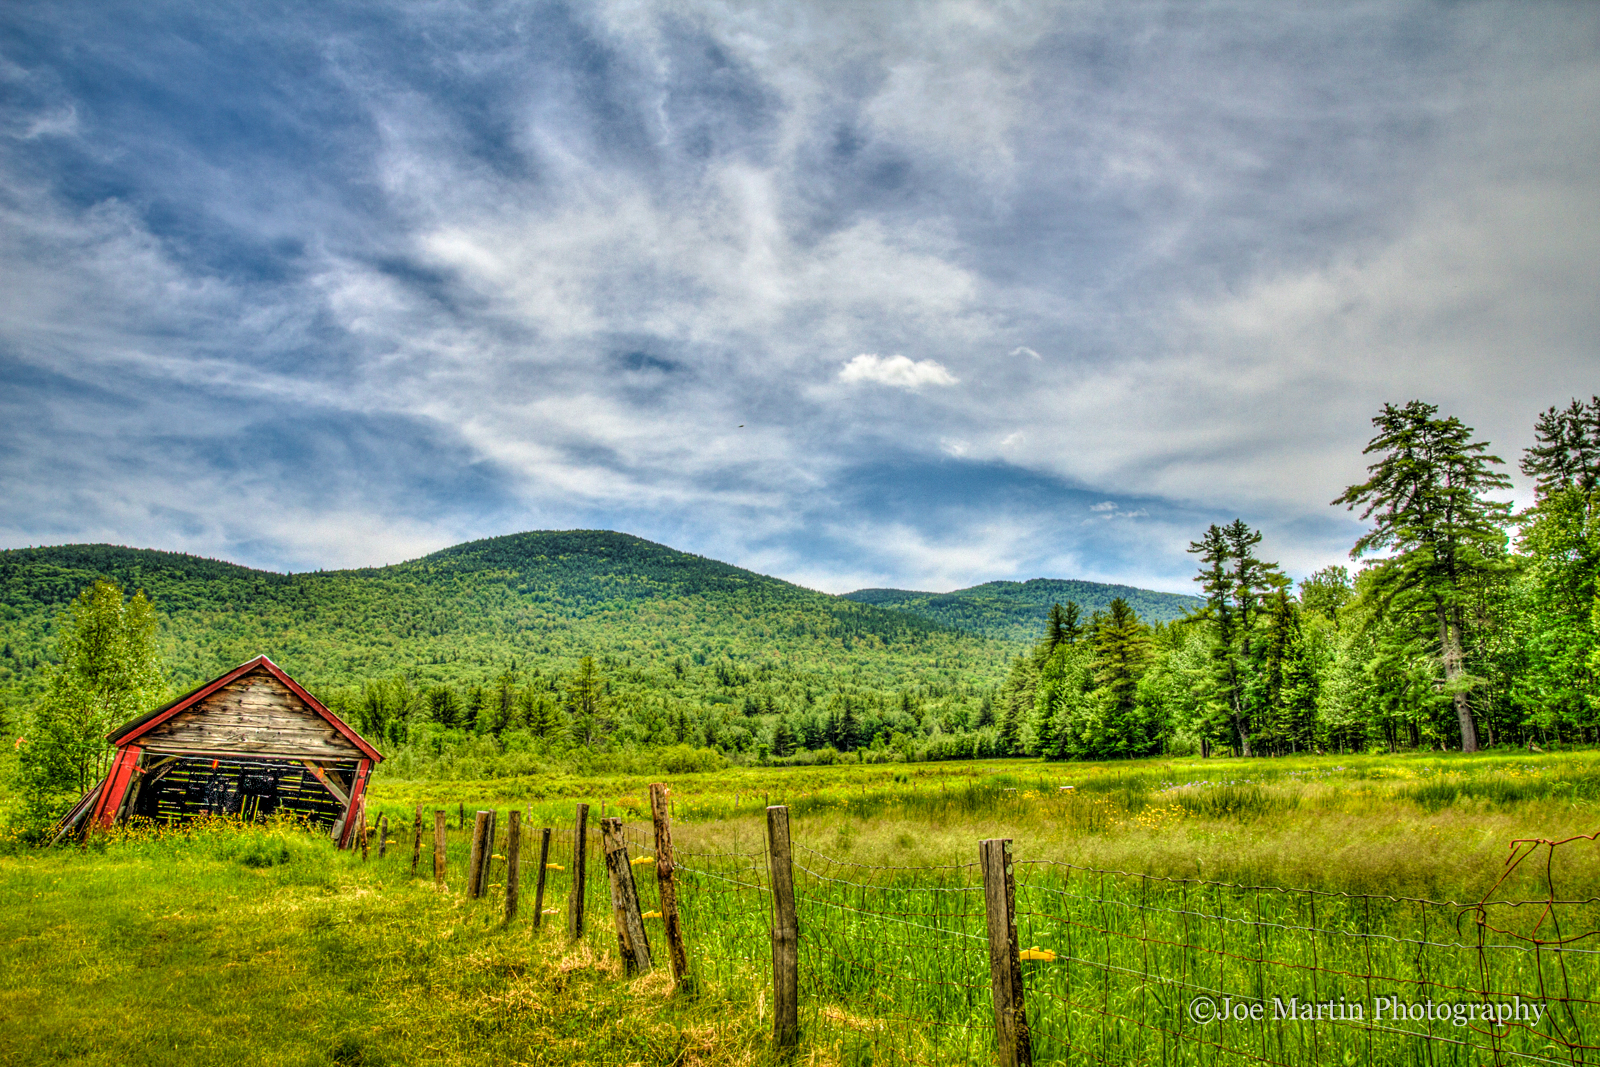 Weekend Sale on Fine Art Landscape Prints by Joe Martin Photography